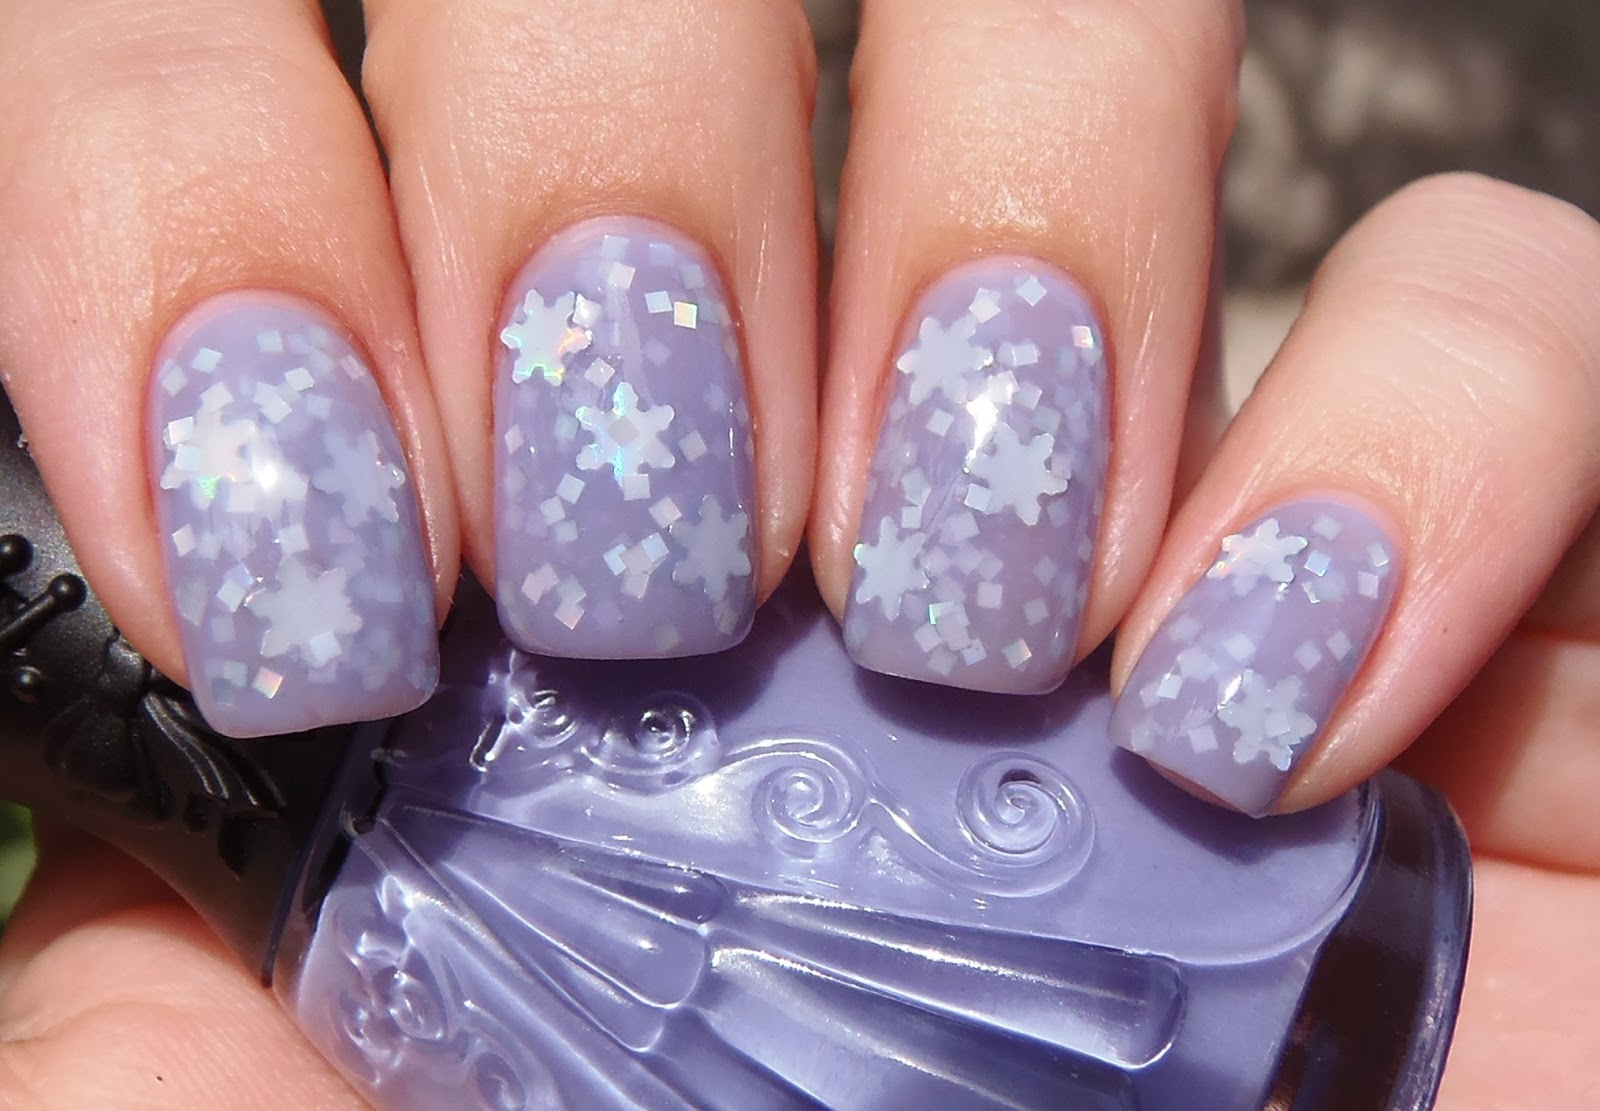 OPI Nail Envy 1 Coat Nfu Oh JS13 Sally Hansen Complete Salon Manicure Open Mica Night Silver Holographic Snowflakes From Glitter